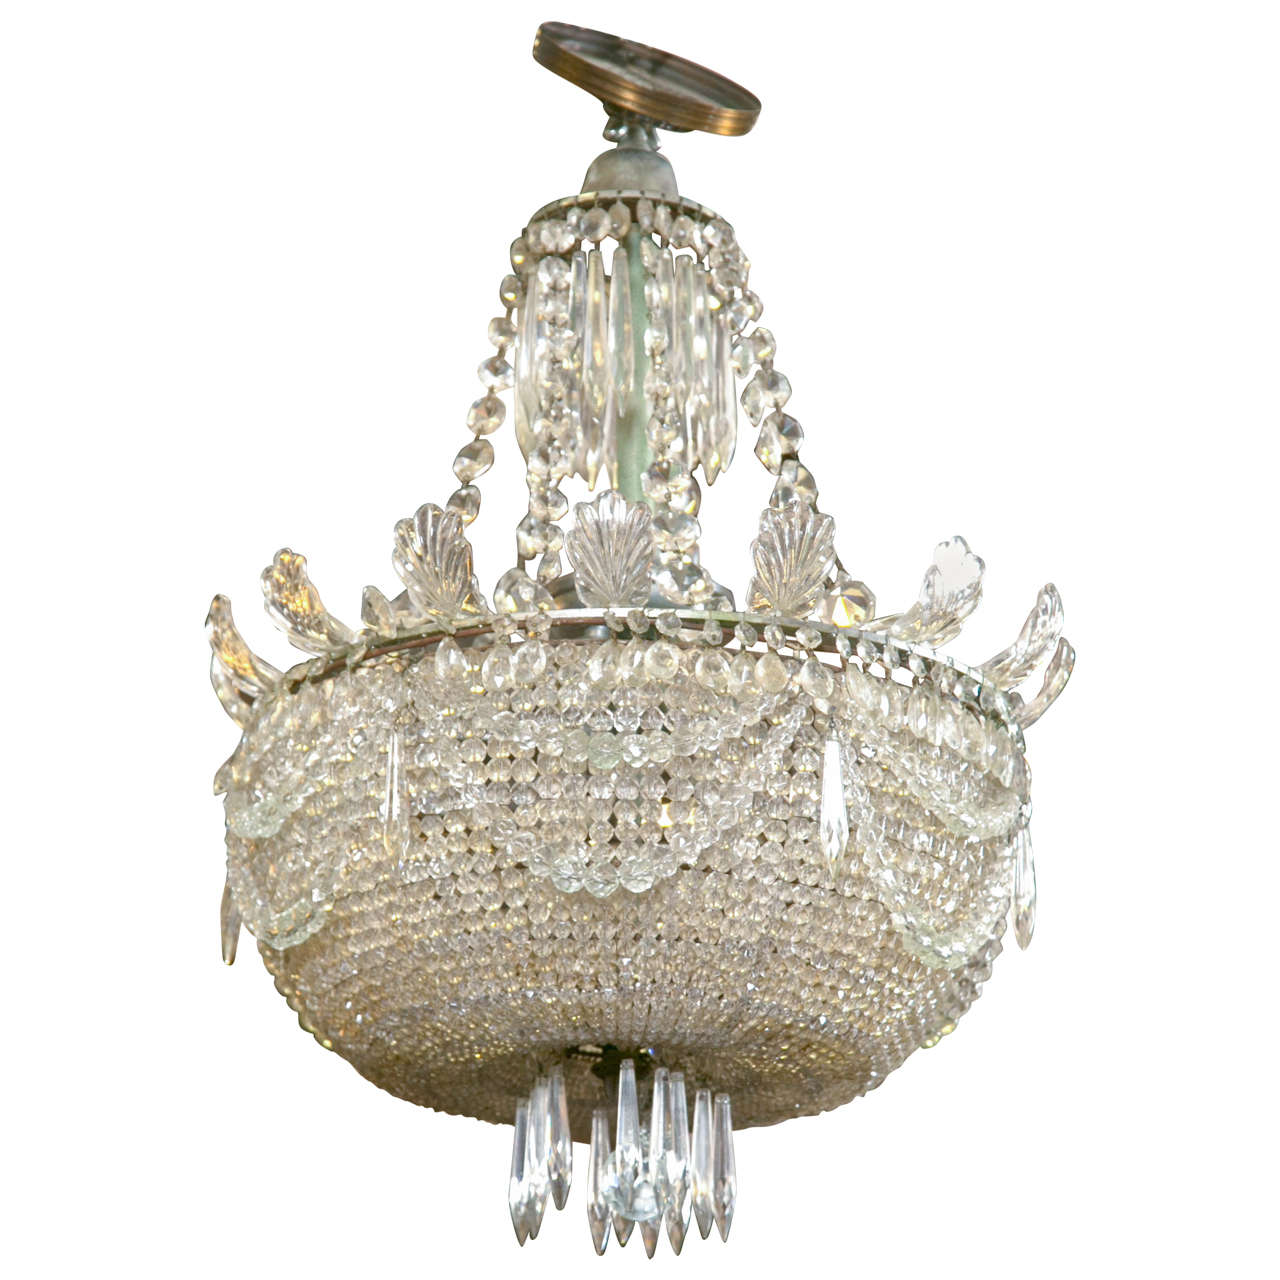 Antique beaded crystal chandelier at 1stdibs - Chandelier glass beads ...